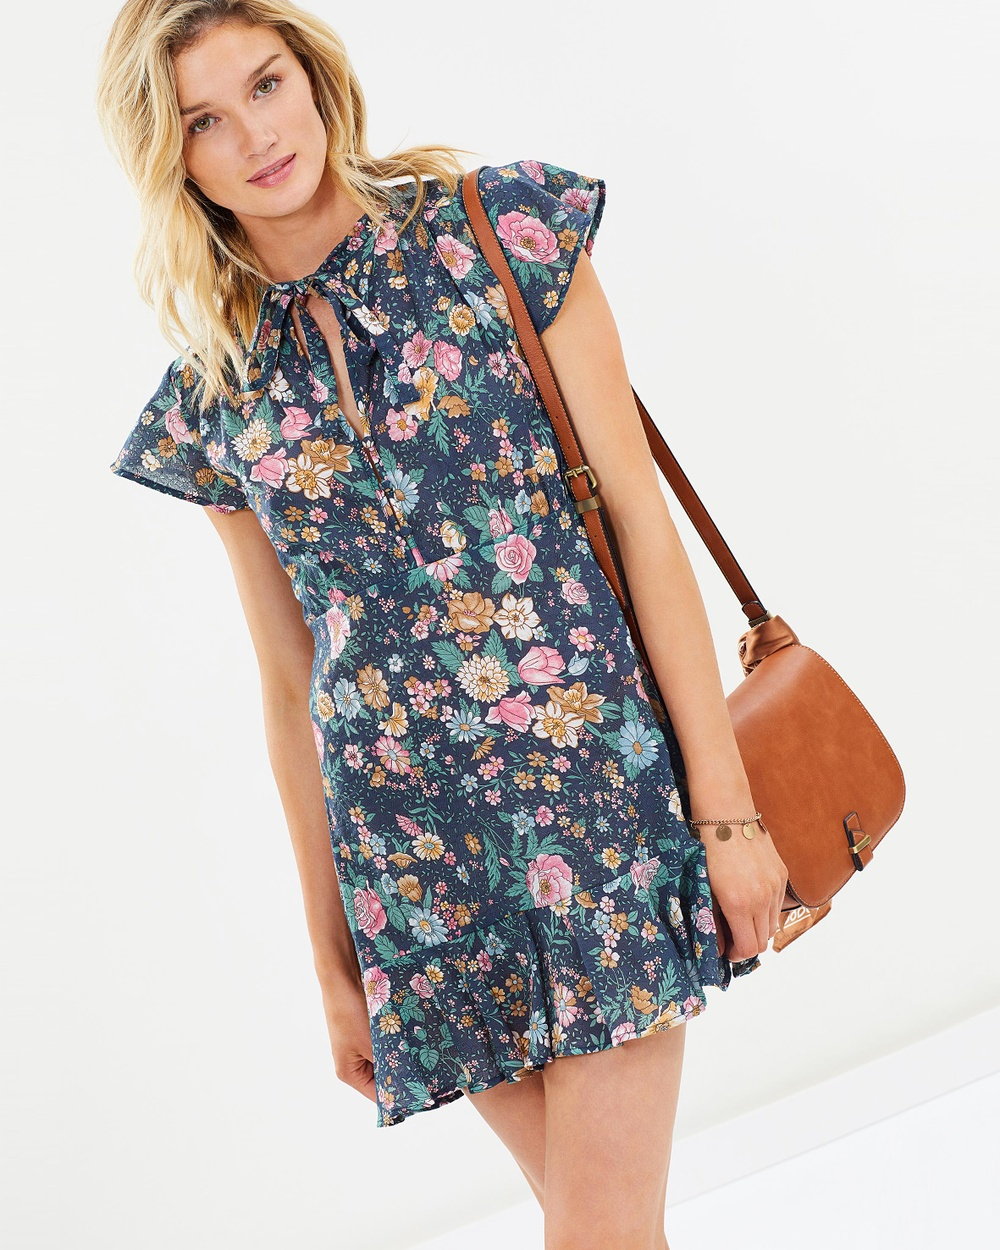 Auguste The Label Spring Rose Wylde Play Dress Printed Dresses Navy Spring Rose Wylde Play Dress